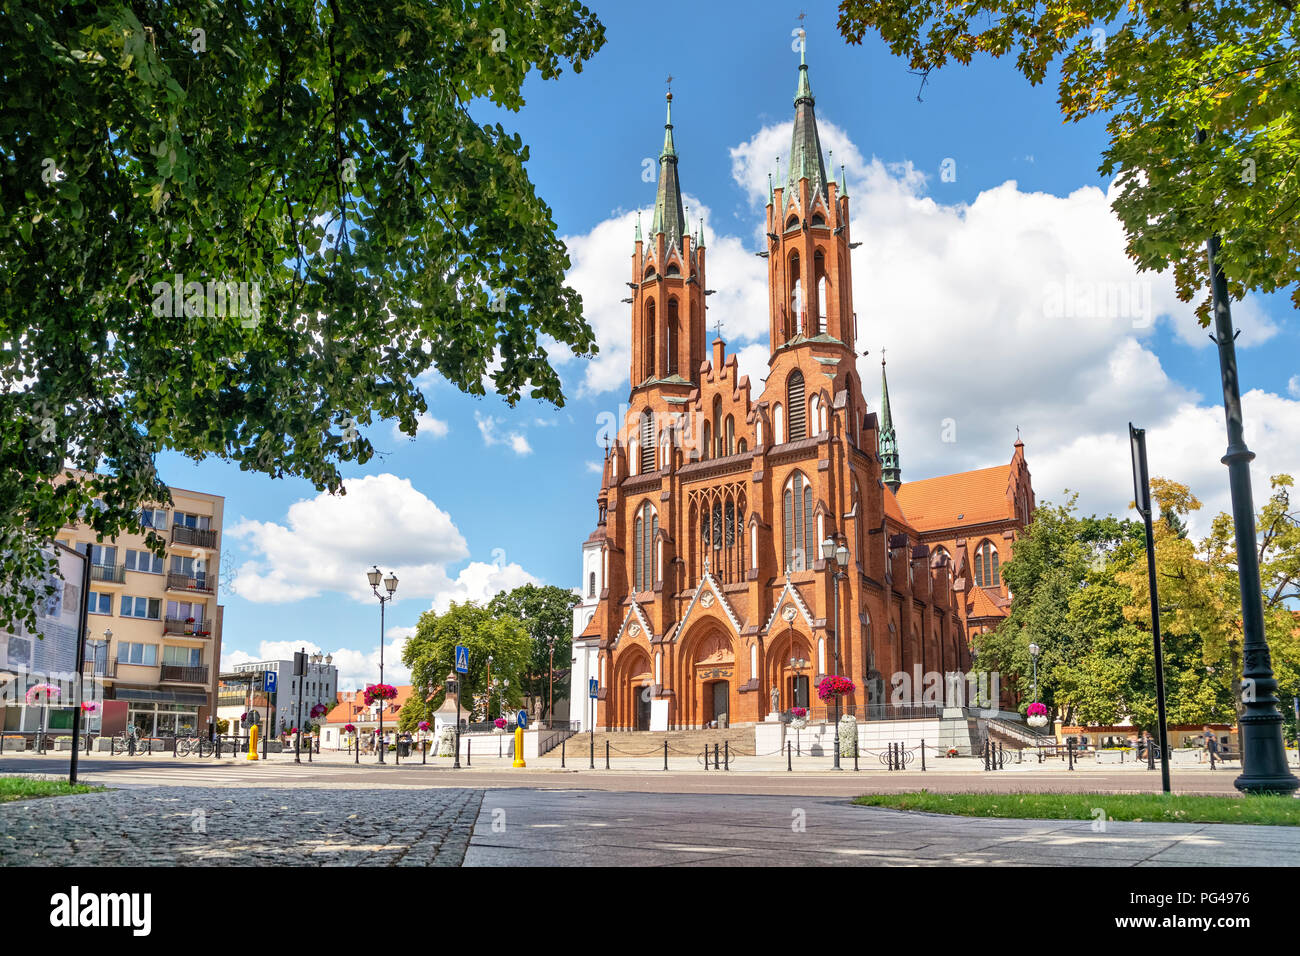 Basilica of the Assumption of the Blessed Virgin Mary in Bialystok, Podlaskie Voivodeship, Poland - Stock Image